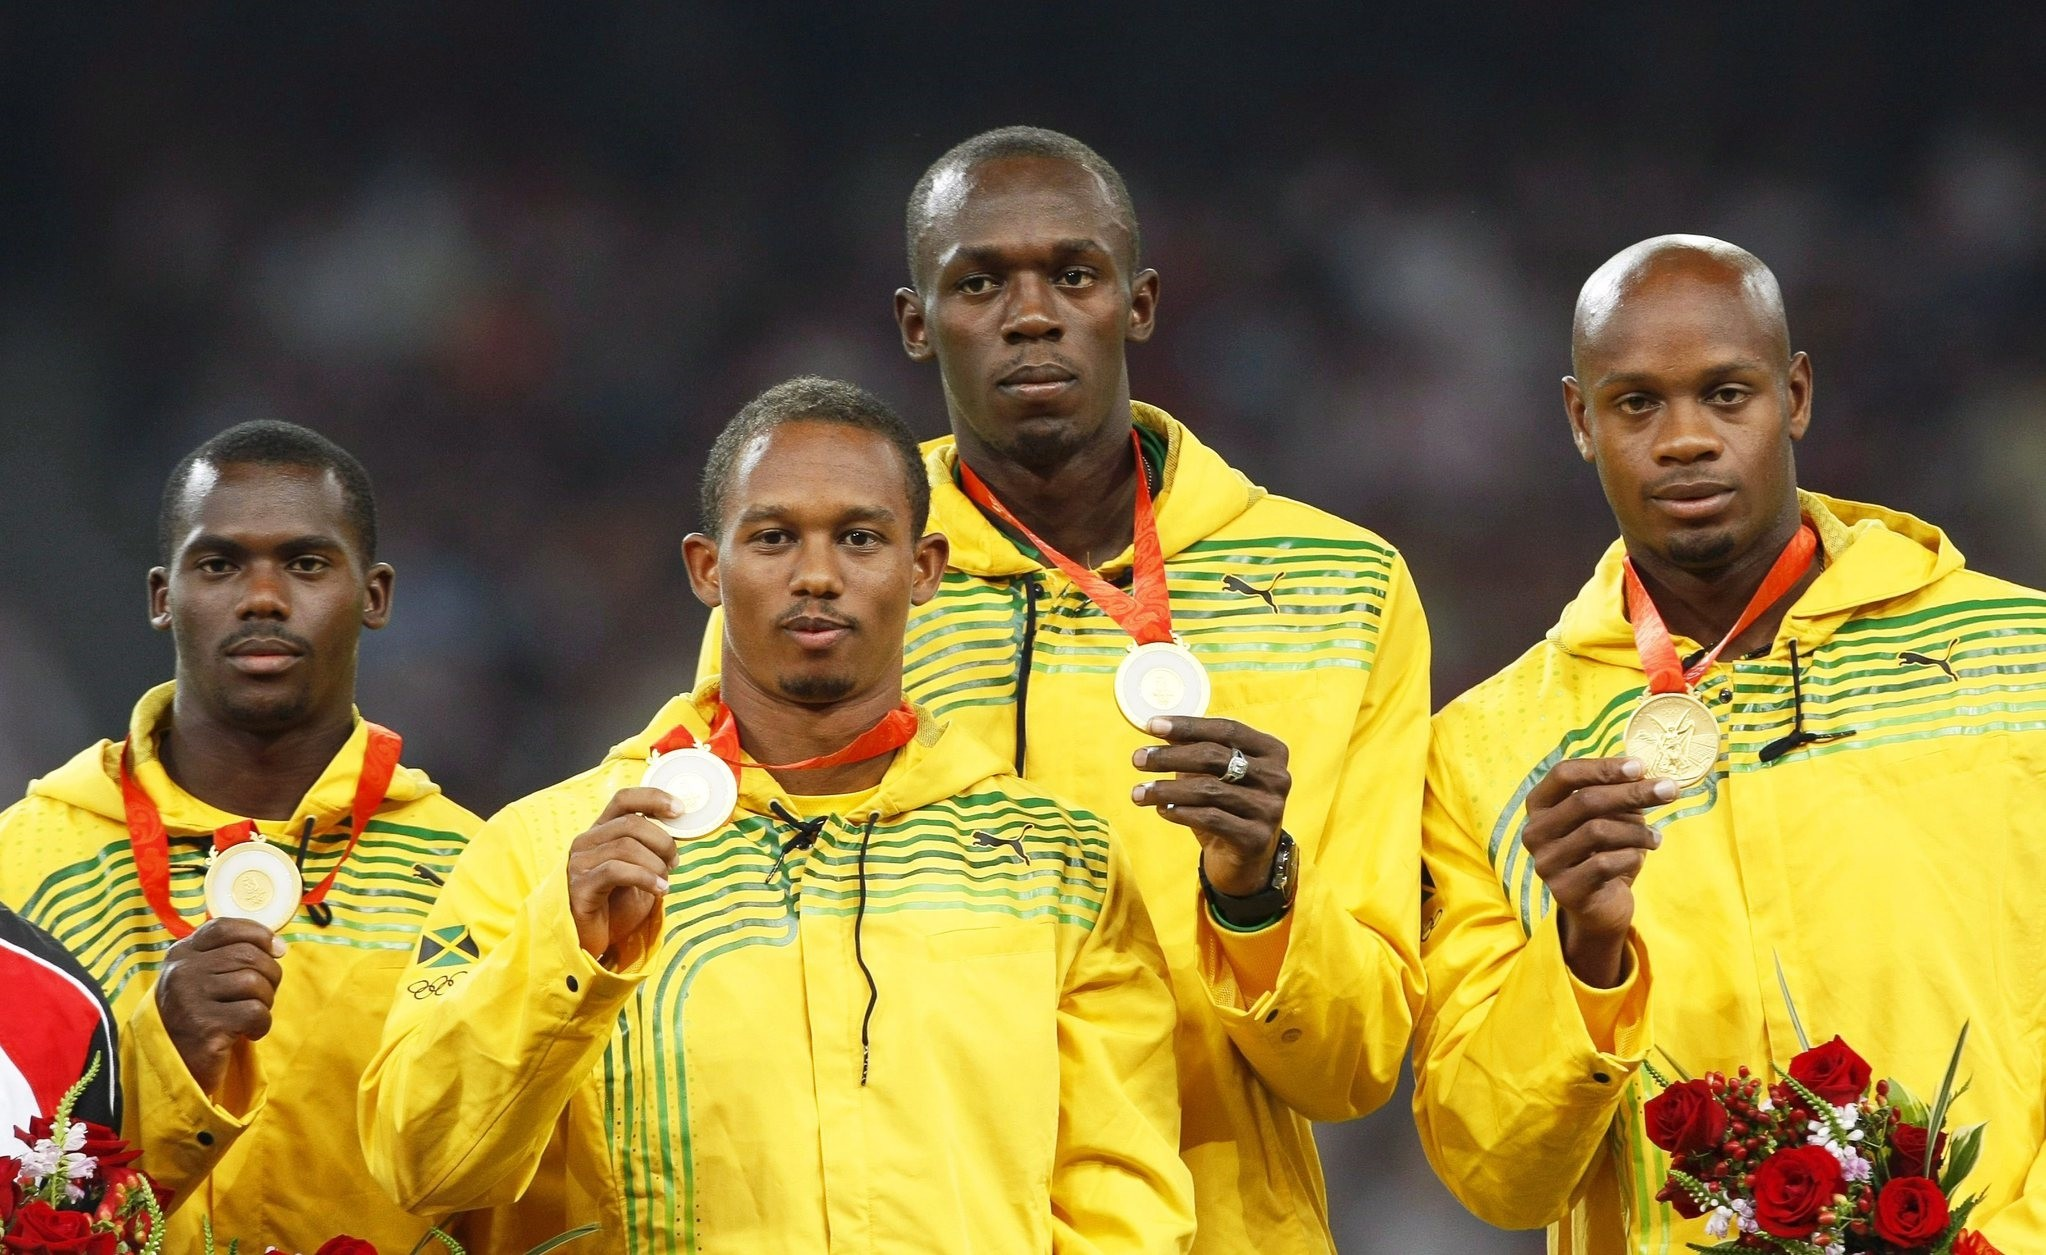 A file picture dated 23 August 2008 of Jamaica's (L-R) Nesta Carter, Michael Frater, Usain Bolt, and Asafa Powell posing with their gold medals. (EPA Photo)